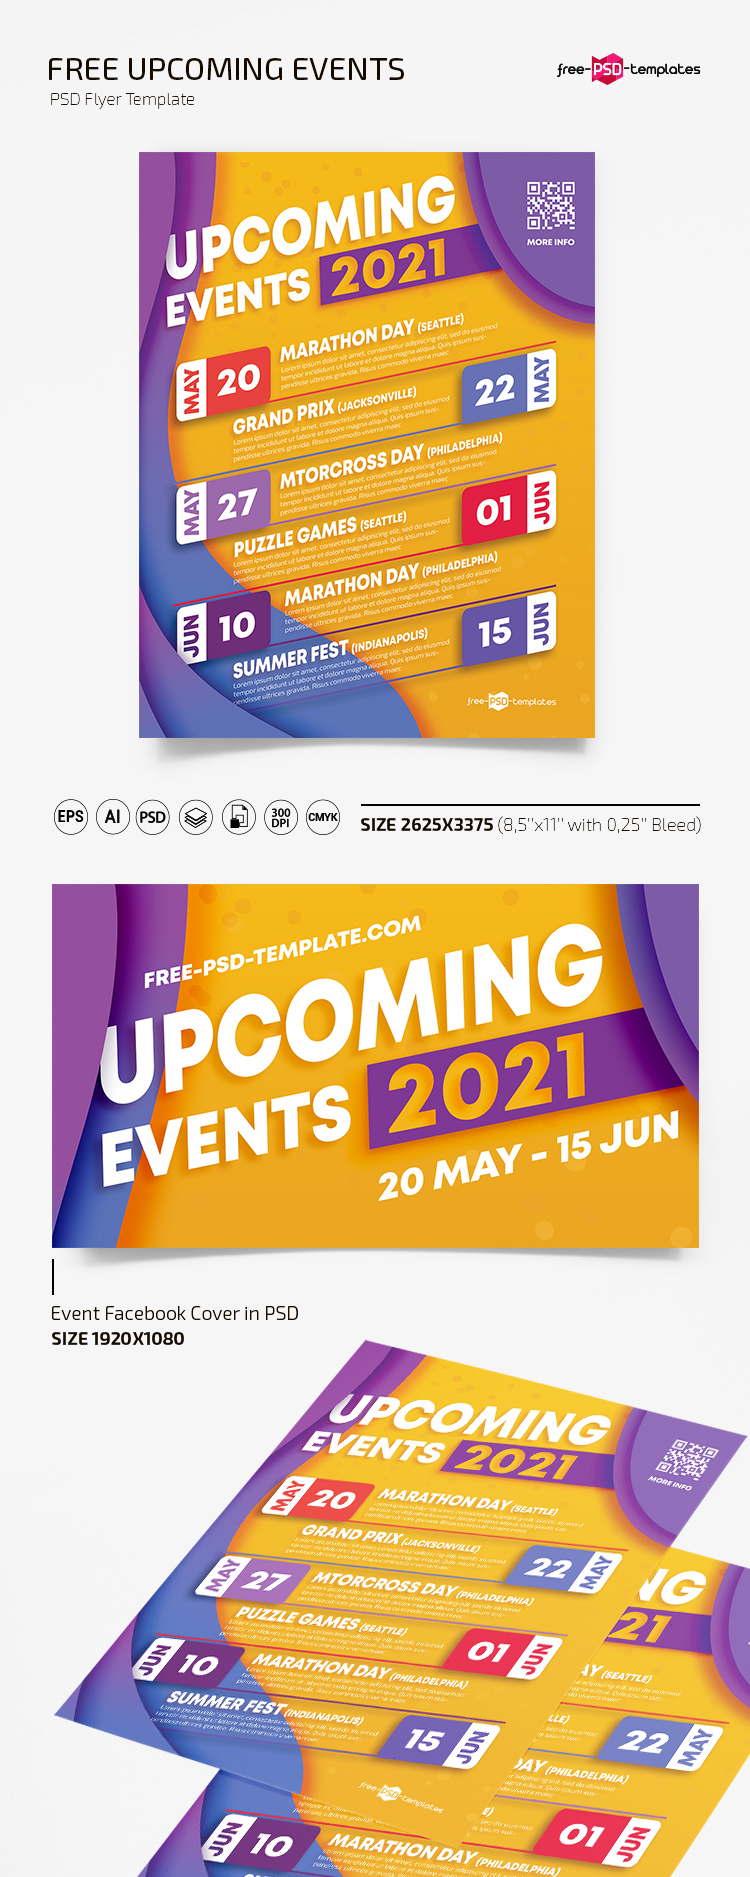 Free Upcoming Events Flyer Template in PSD + AI